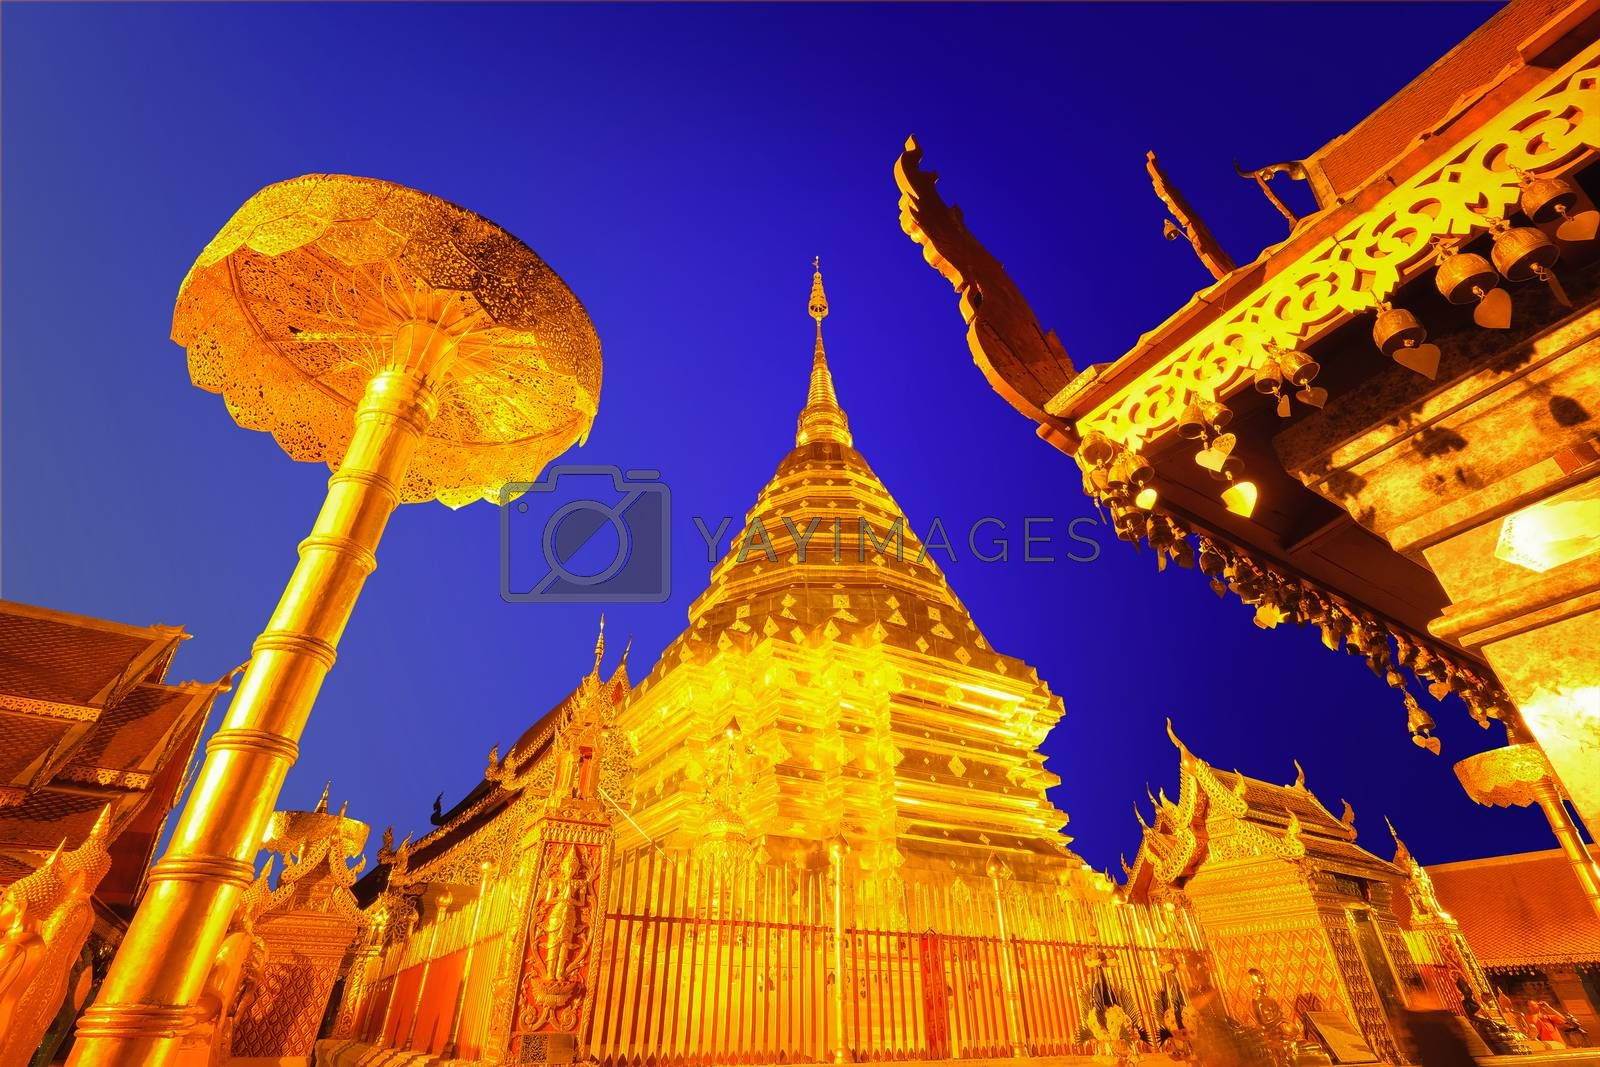 Night view of Wat Phra That Doi Suthep, Chiang Mai, Popular hist by Surasak